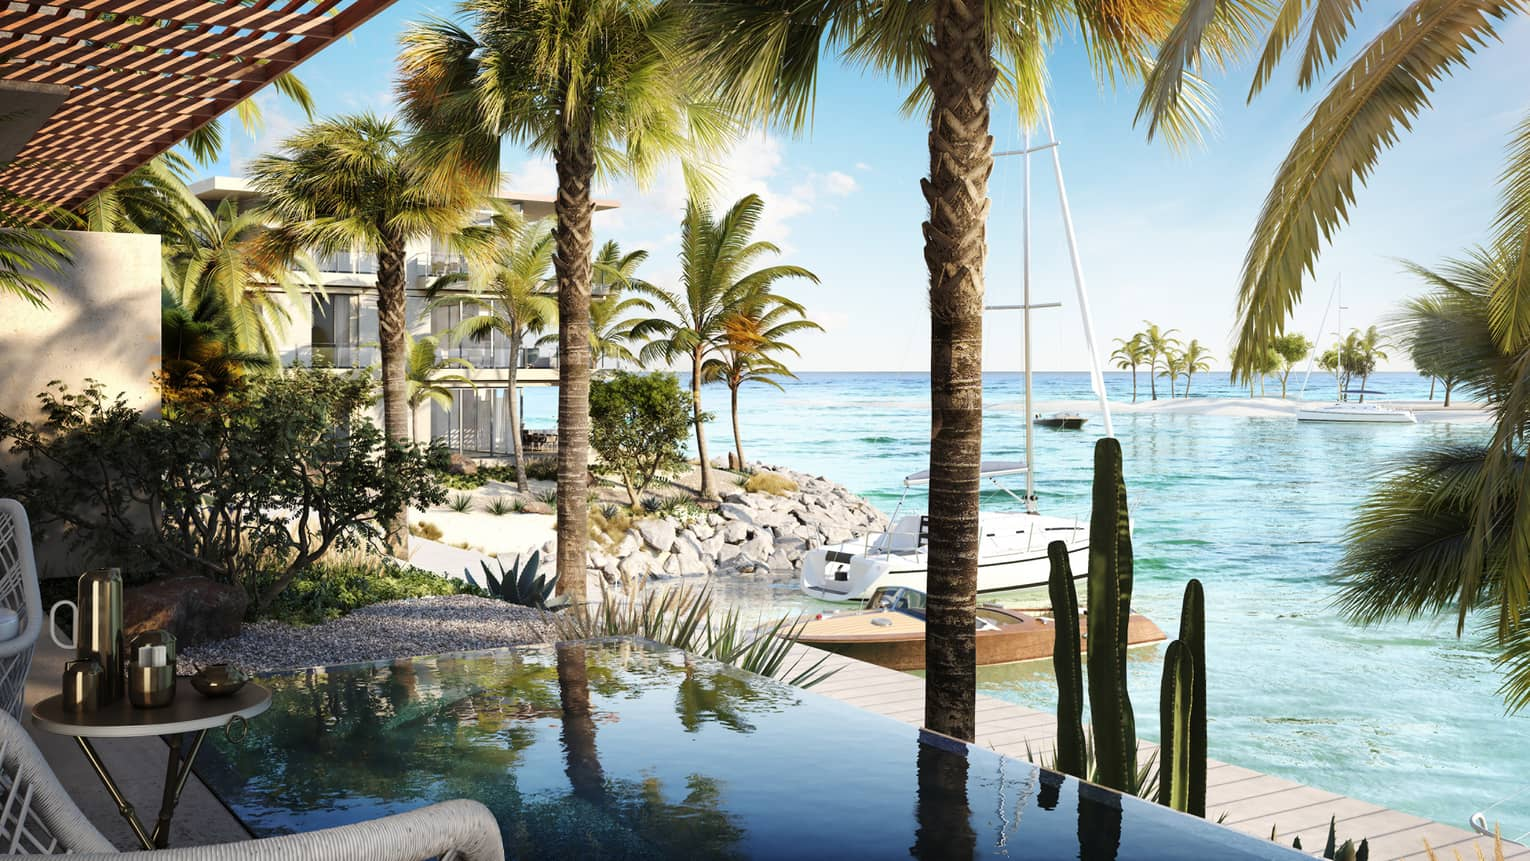 Wicker patio chairs, bistro table and small reflective pool, palms by waterfront